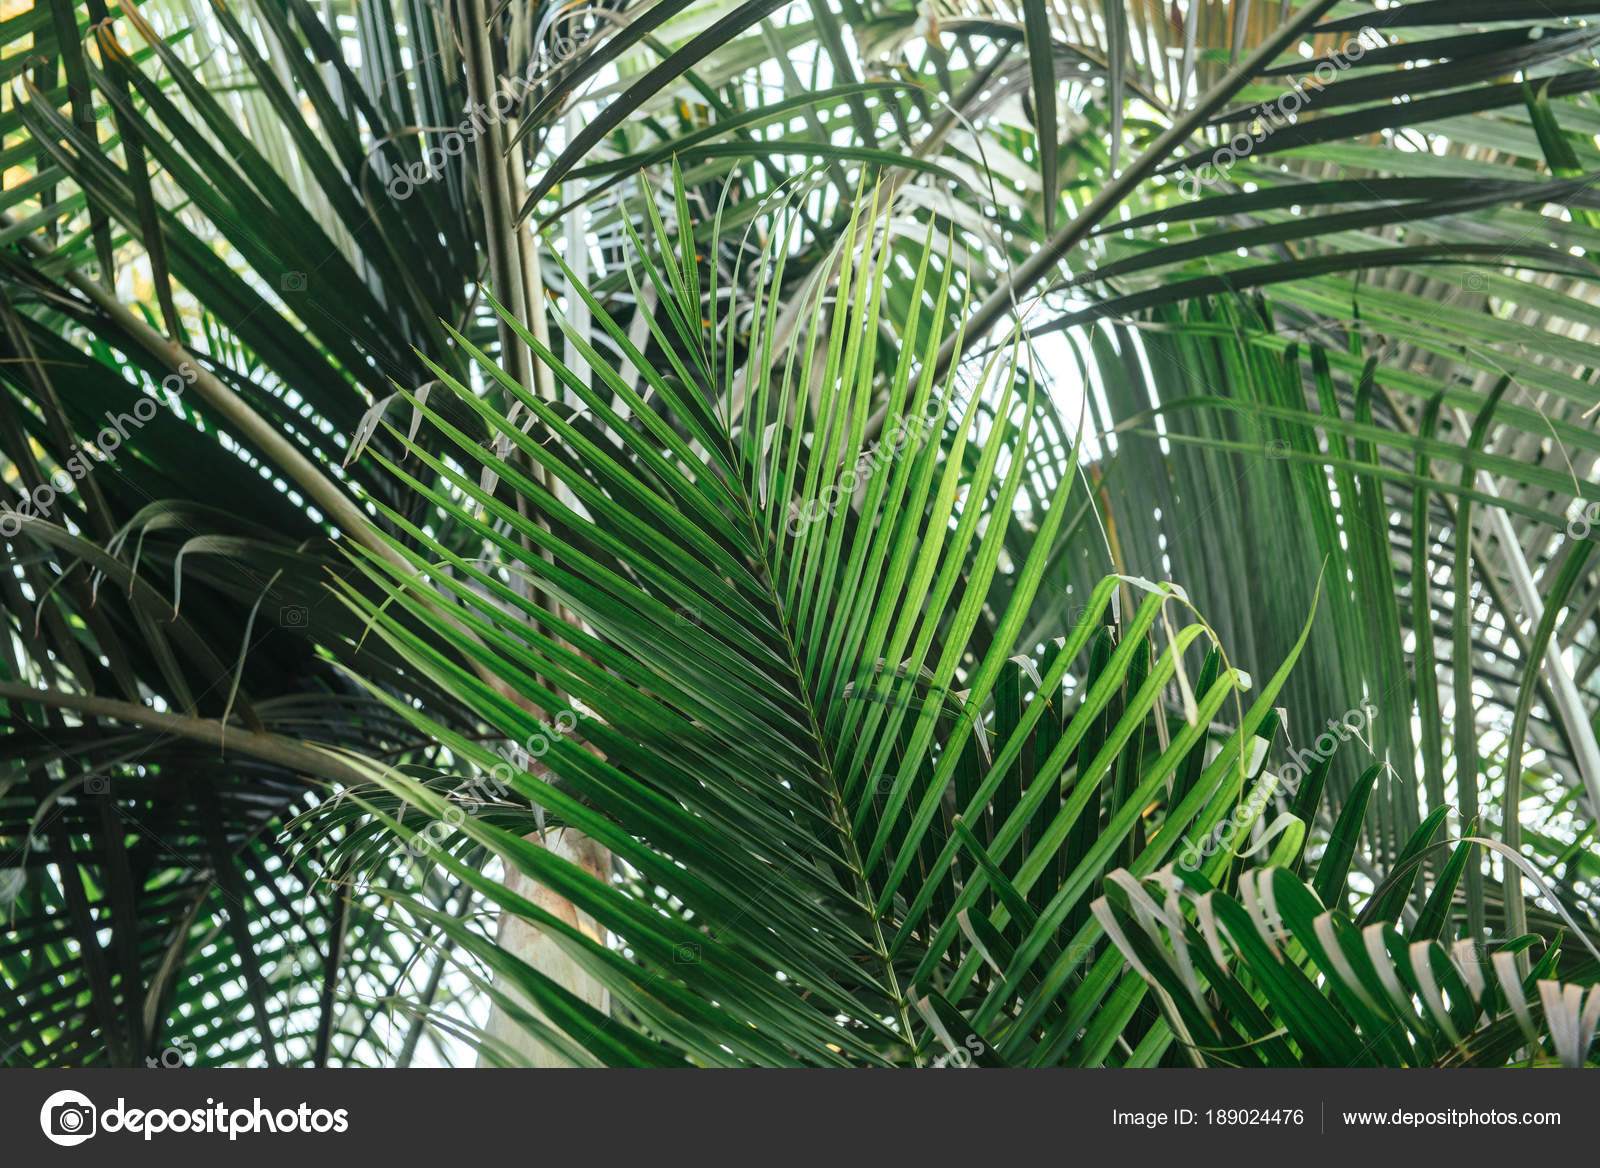 Hd Palm Tree Wallpaper Brunches Of Palm Tree Green Leaves Background Wallpaper With Thin Palm Leaves Stock Photo C Thirteen 189024476